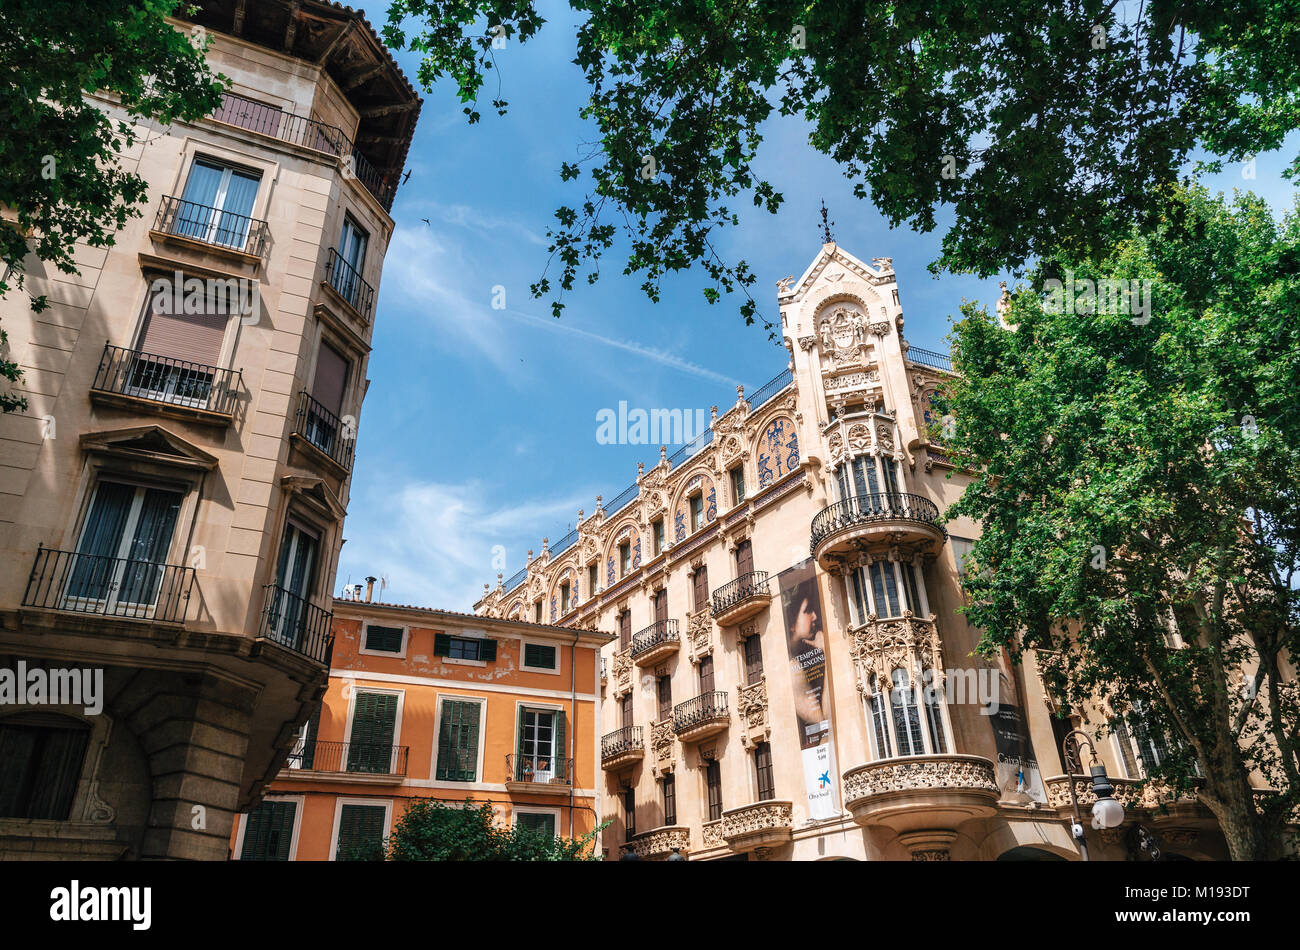 Palma de Mallorca, Spain - May 27, 2016: Modern Mediterranean architecture in Palma, Balearic islands, Spain - Stock Image